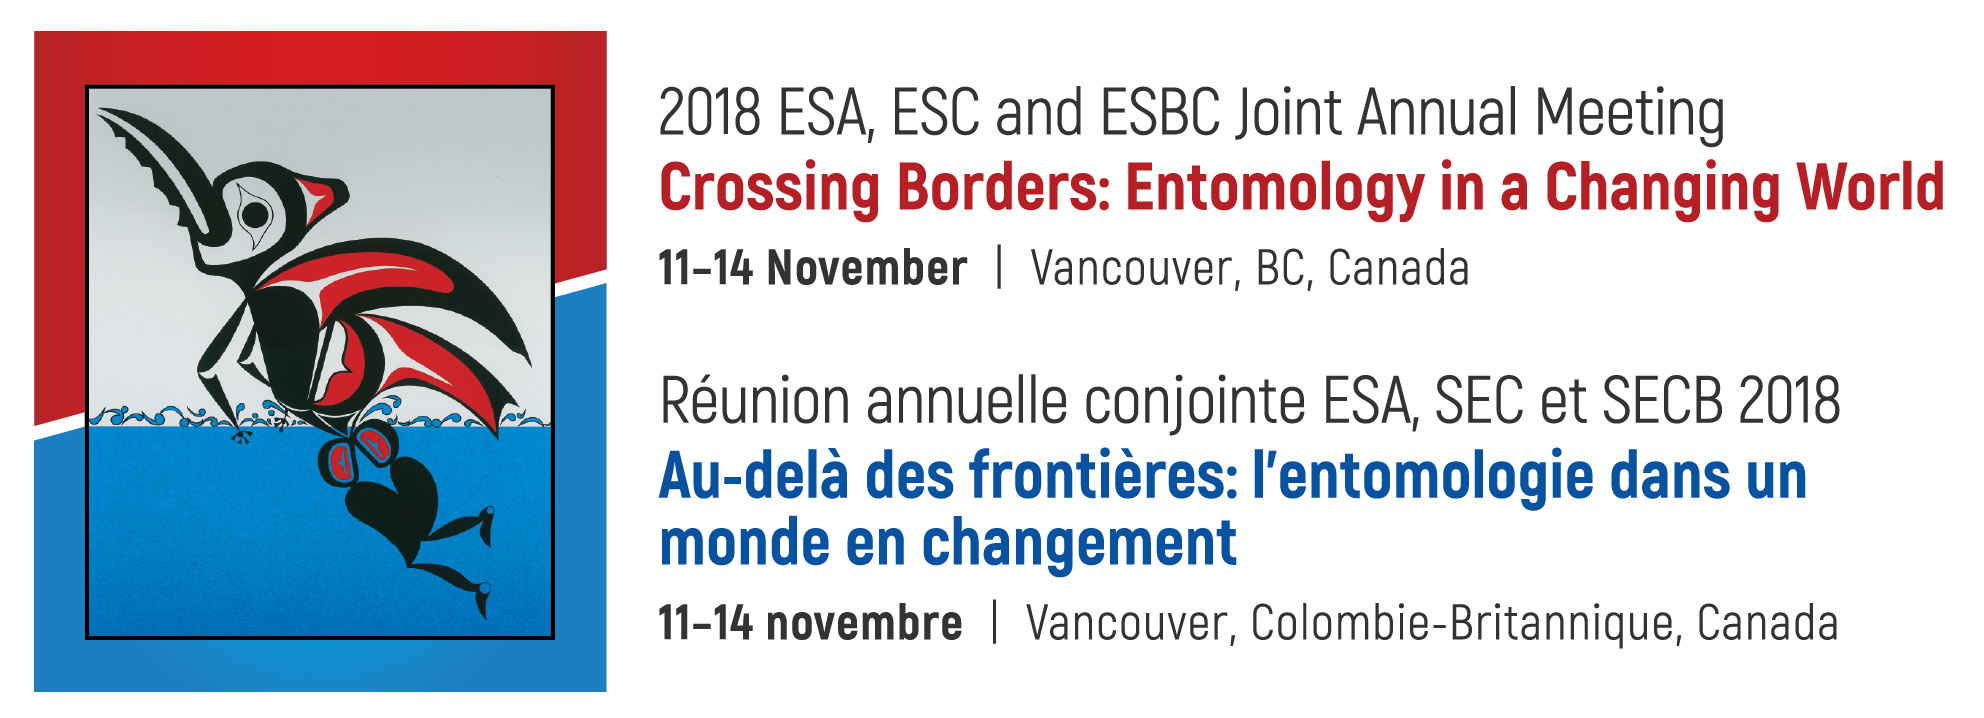 Entomology 2018: Crossing Borders: Entomology in a Changing World